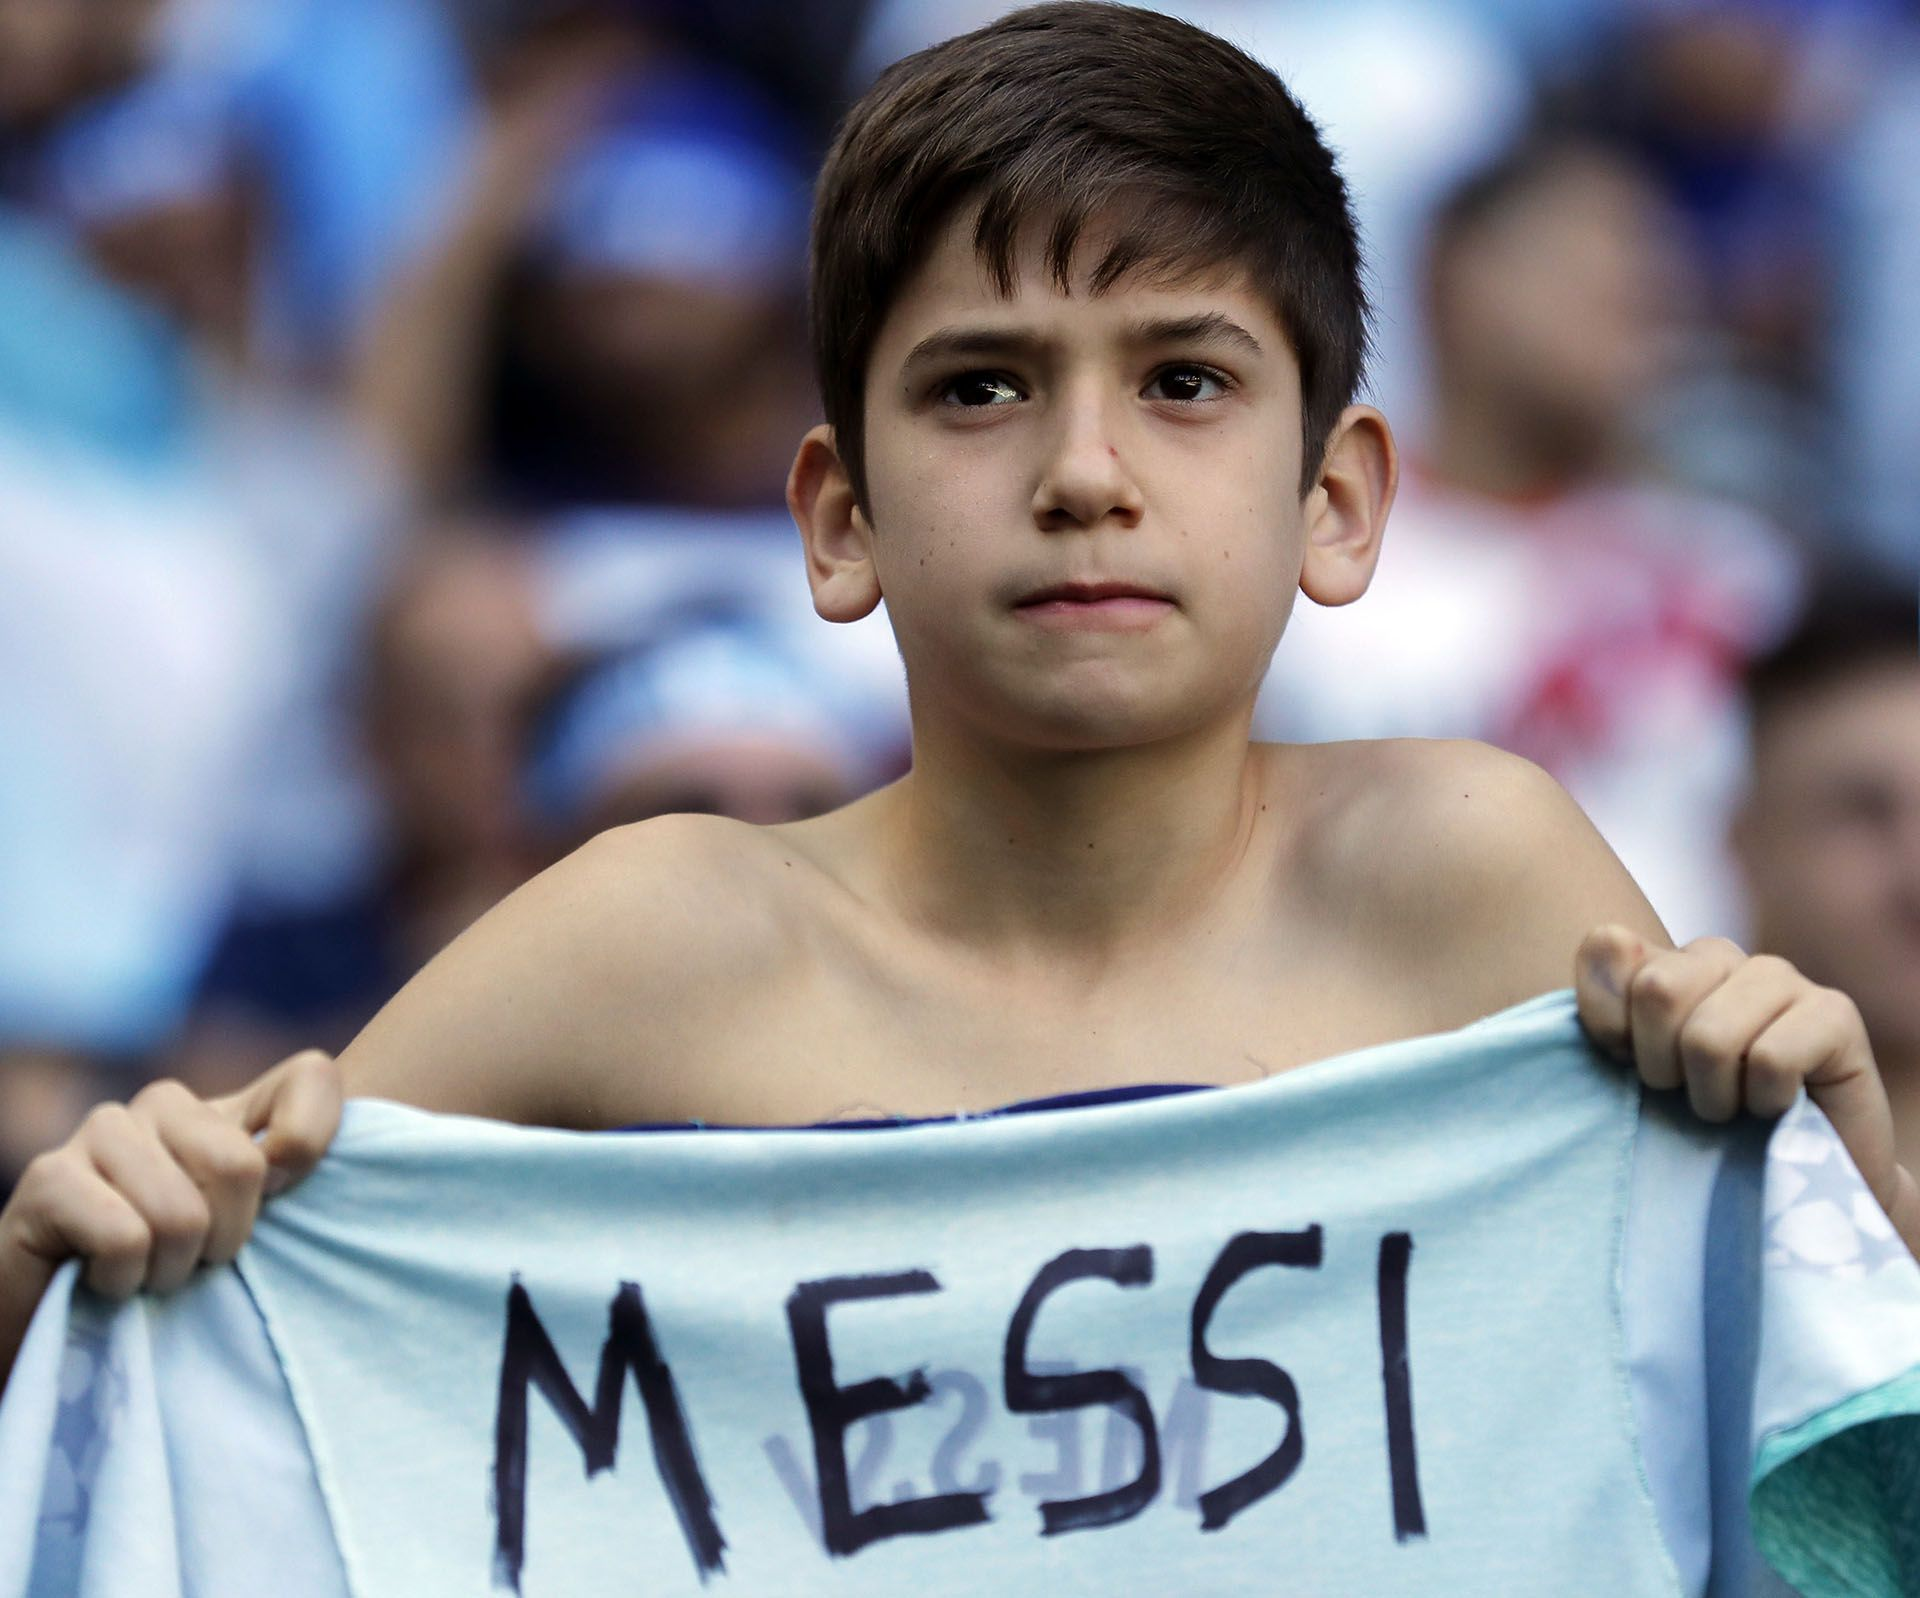 A young Argentina fan holds a T-shirt with the name of Lionel Messi prior to his team's Copa America Group B soccer match against Qatar at Arena do Gremio in Porto Alegre, Brazil, Sunday, June 23, 2019. (AP Photo/Victor R. Caivano)